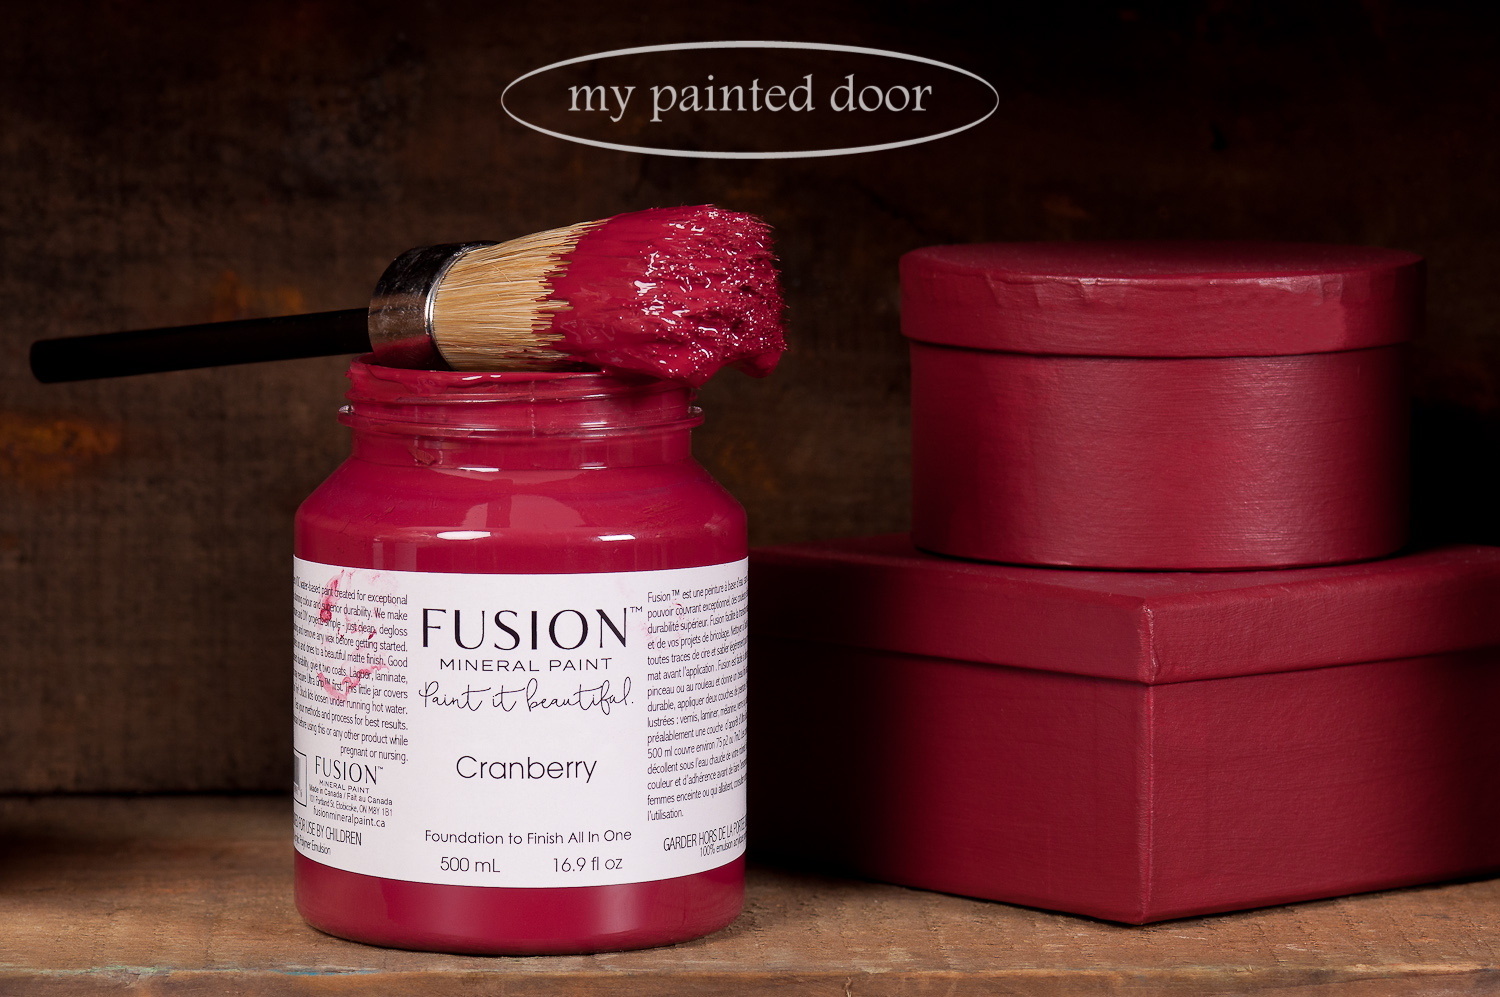 Fusion Mineral Paint in the colour Cranberry